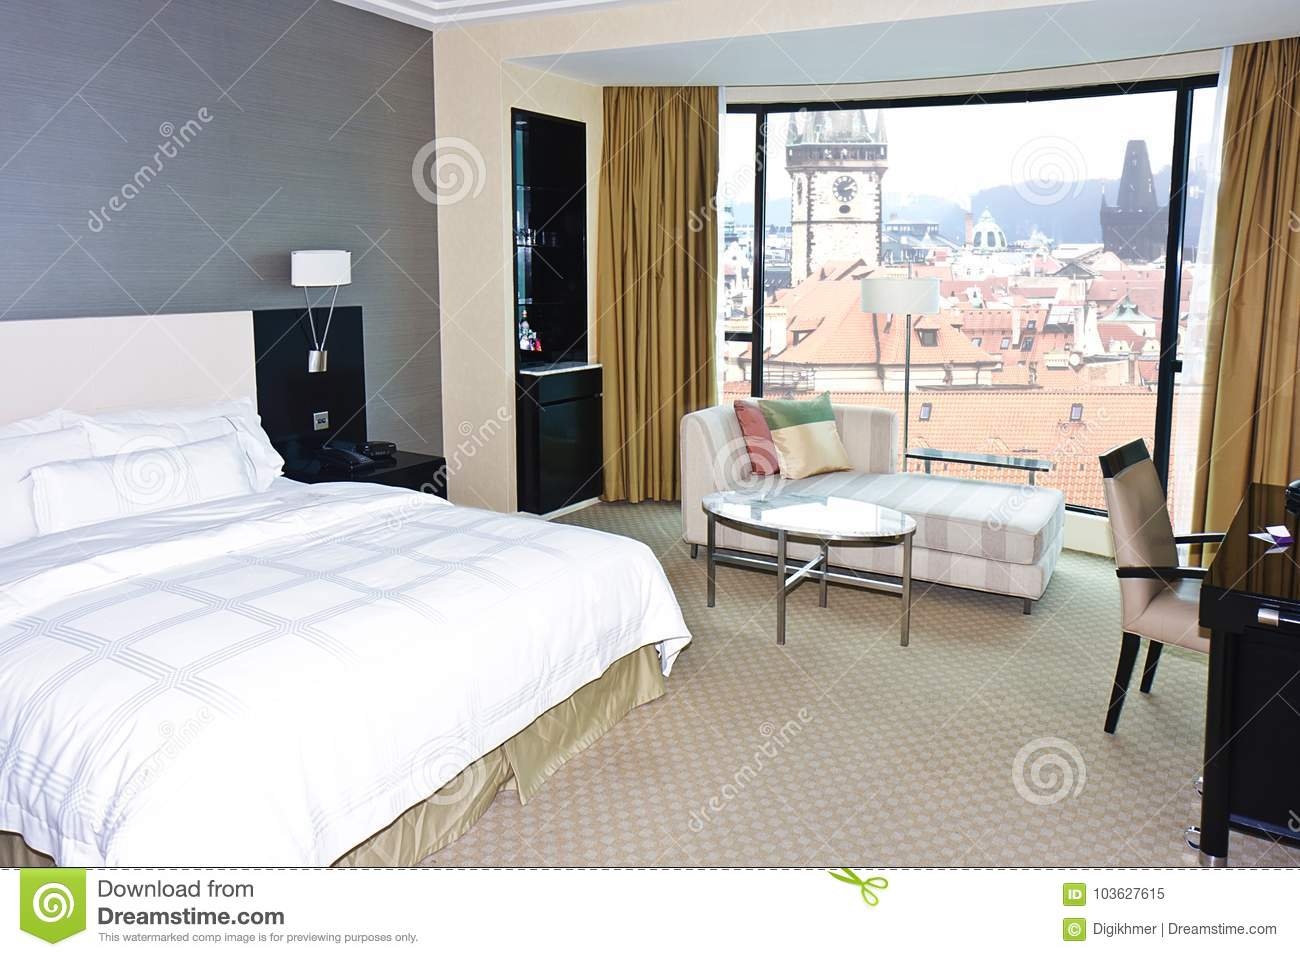 . Modern Bedroom Window View At Prague Stock Image   Image of city